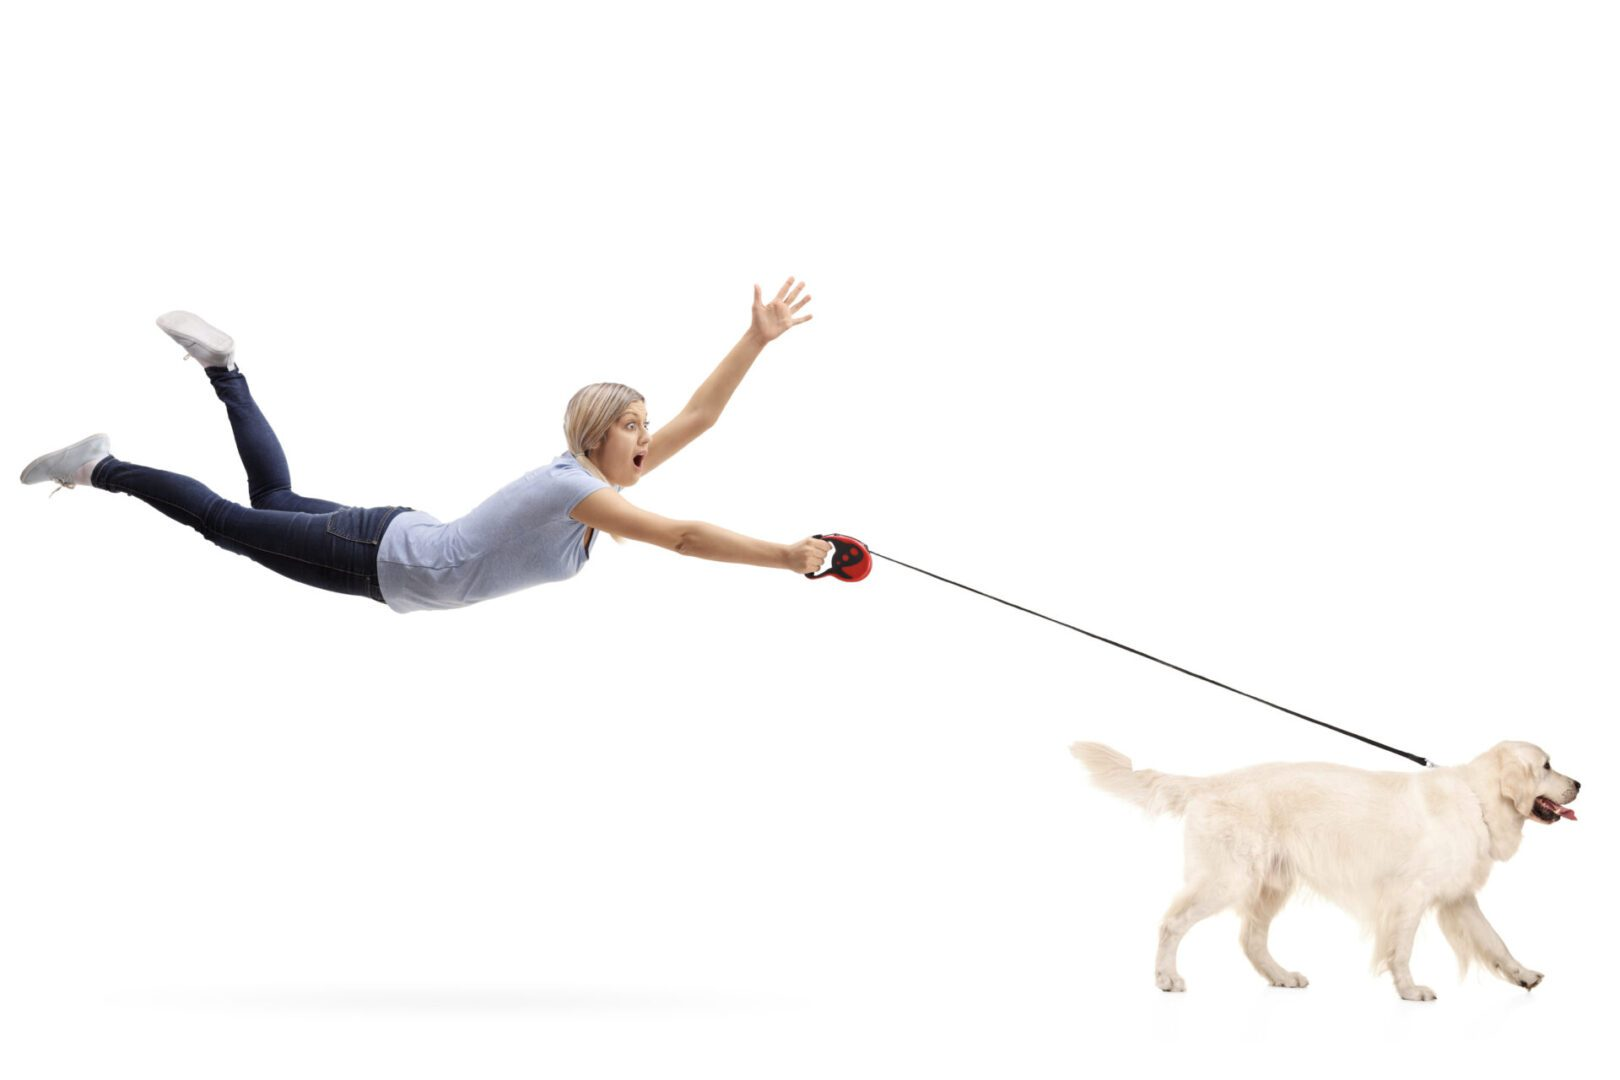 Woman flying with leash in hand and dog running